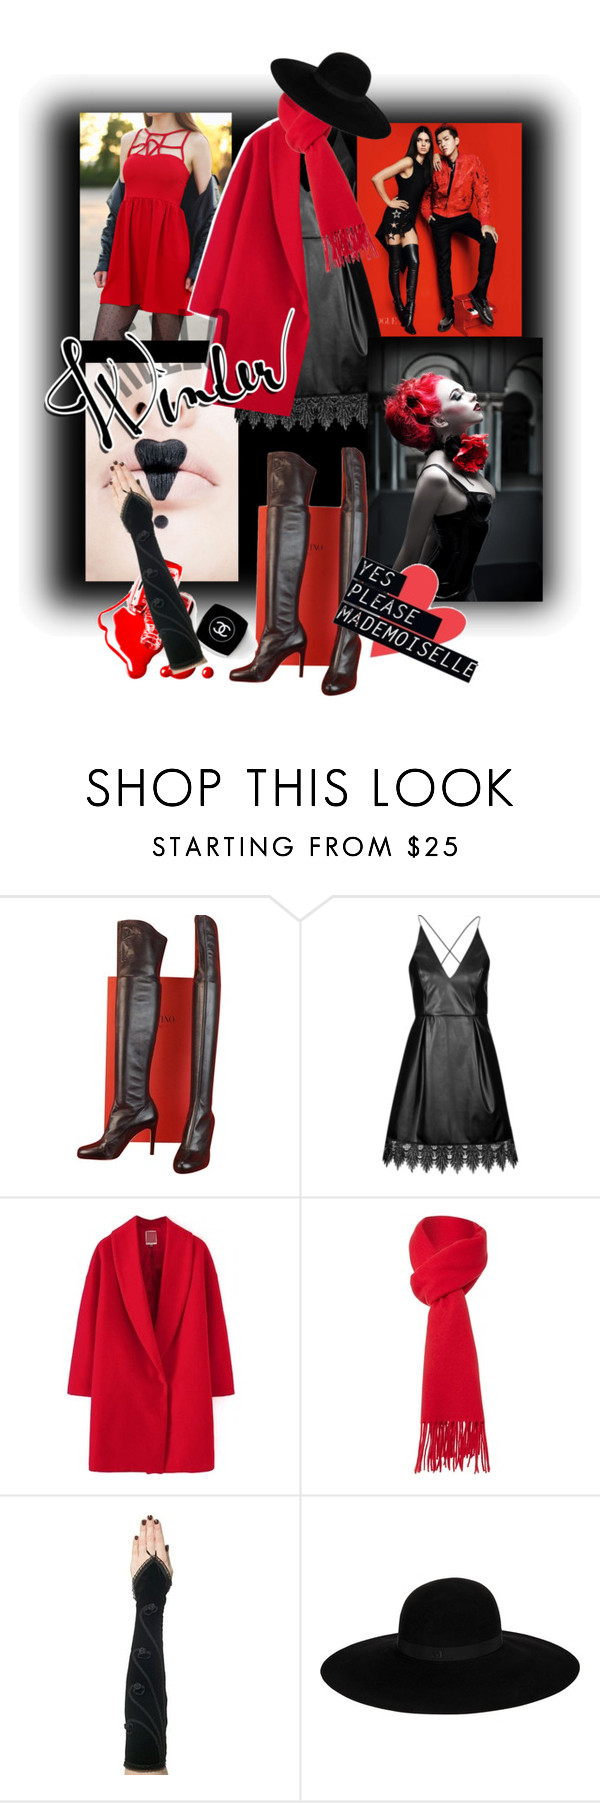 """""""Over the knee boots"""" by kari-c ❤ liked on Polyvore featuring Valentino, KRISVANASSCHE, Topshop, Chanel, Boutique Moschino and Maison Michel"""